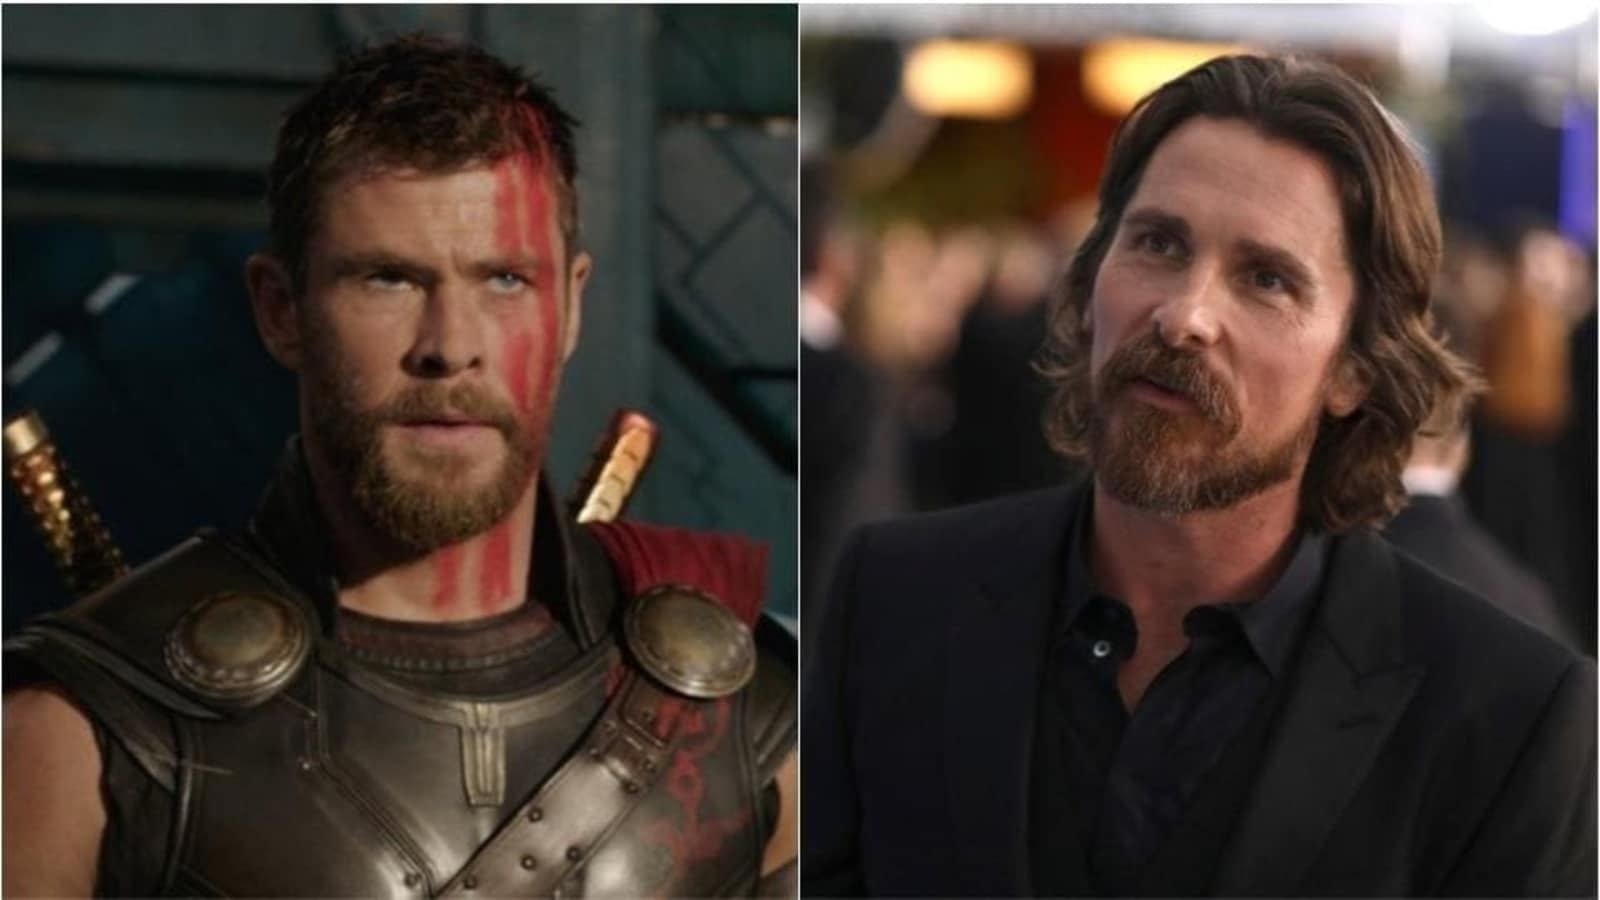 Thor: Love and Thunder star Christian Bale's villainous look as Gorr the  God Butcher leaked, see pics | Hollywood - Hindustan Times